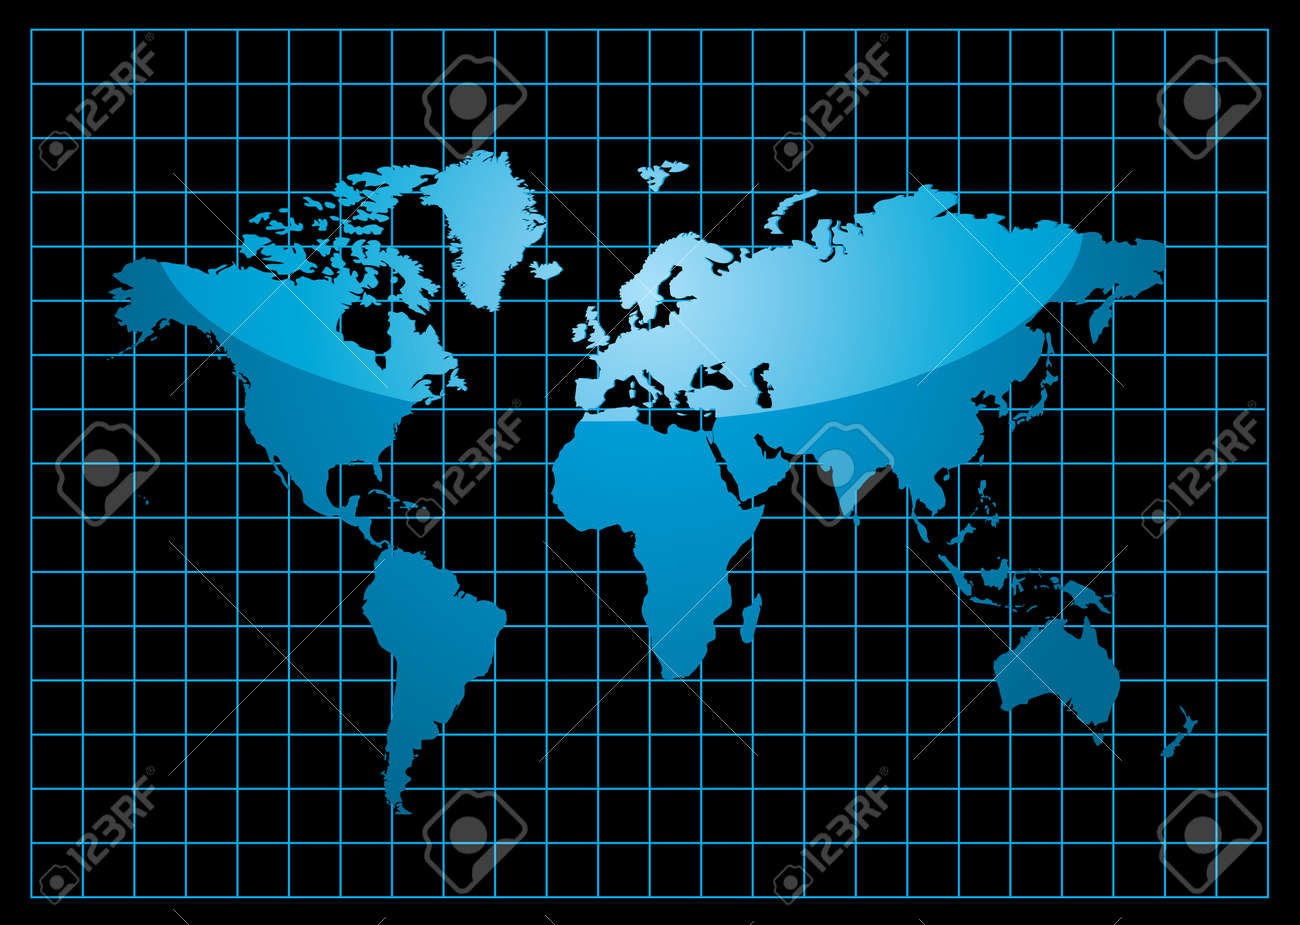 Blue world map with light reflection and grid on a black background blue world map with light reflection and grid on a black background stock vector 6013516 gumiabroncs Gallery